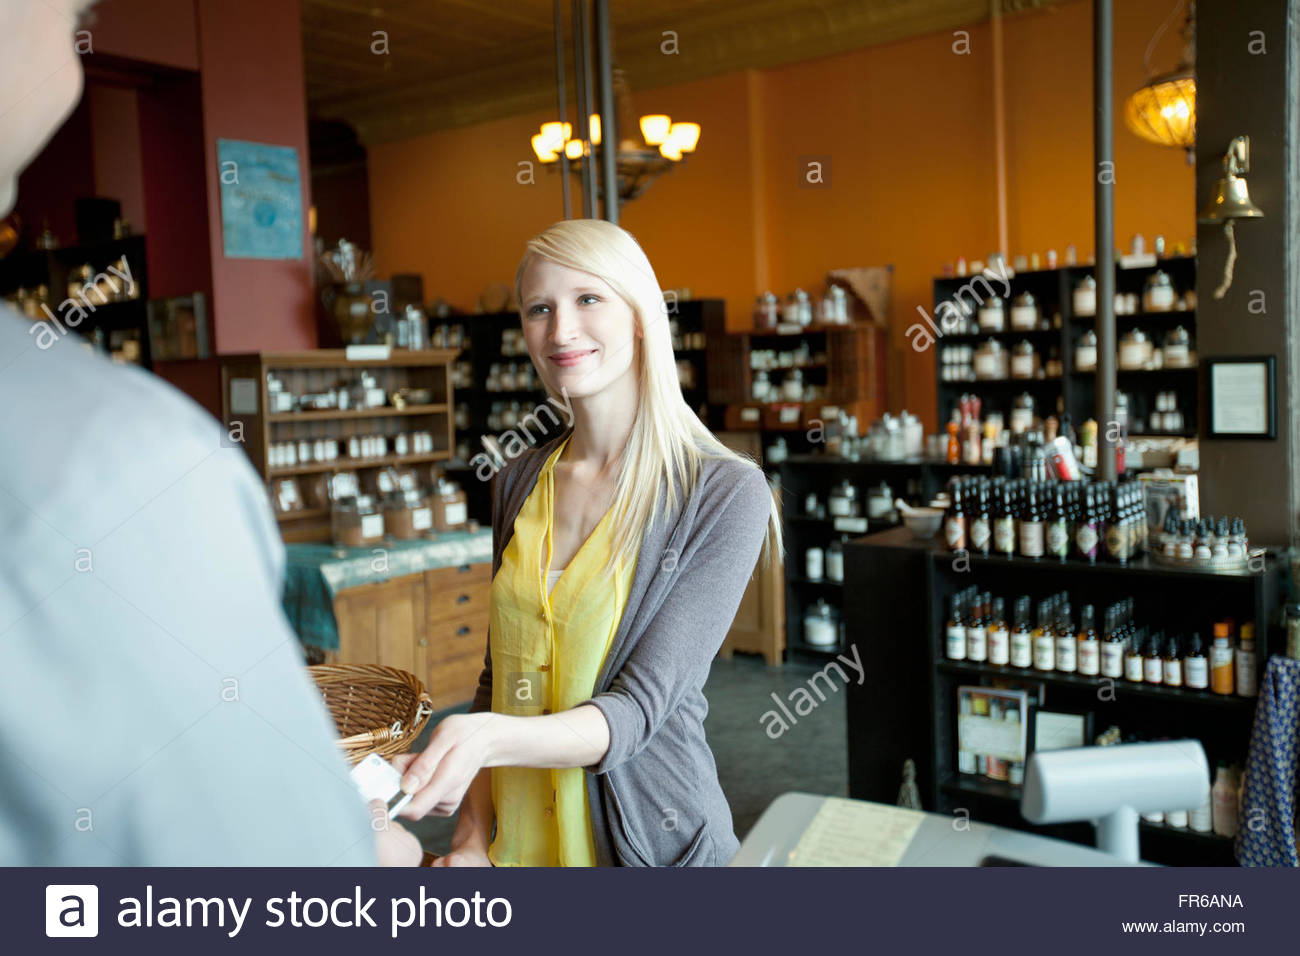 customer paying for product at retail spice store - Stock Image